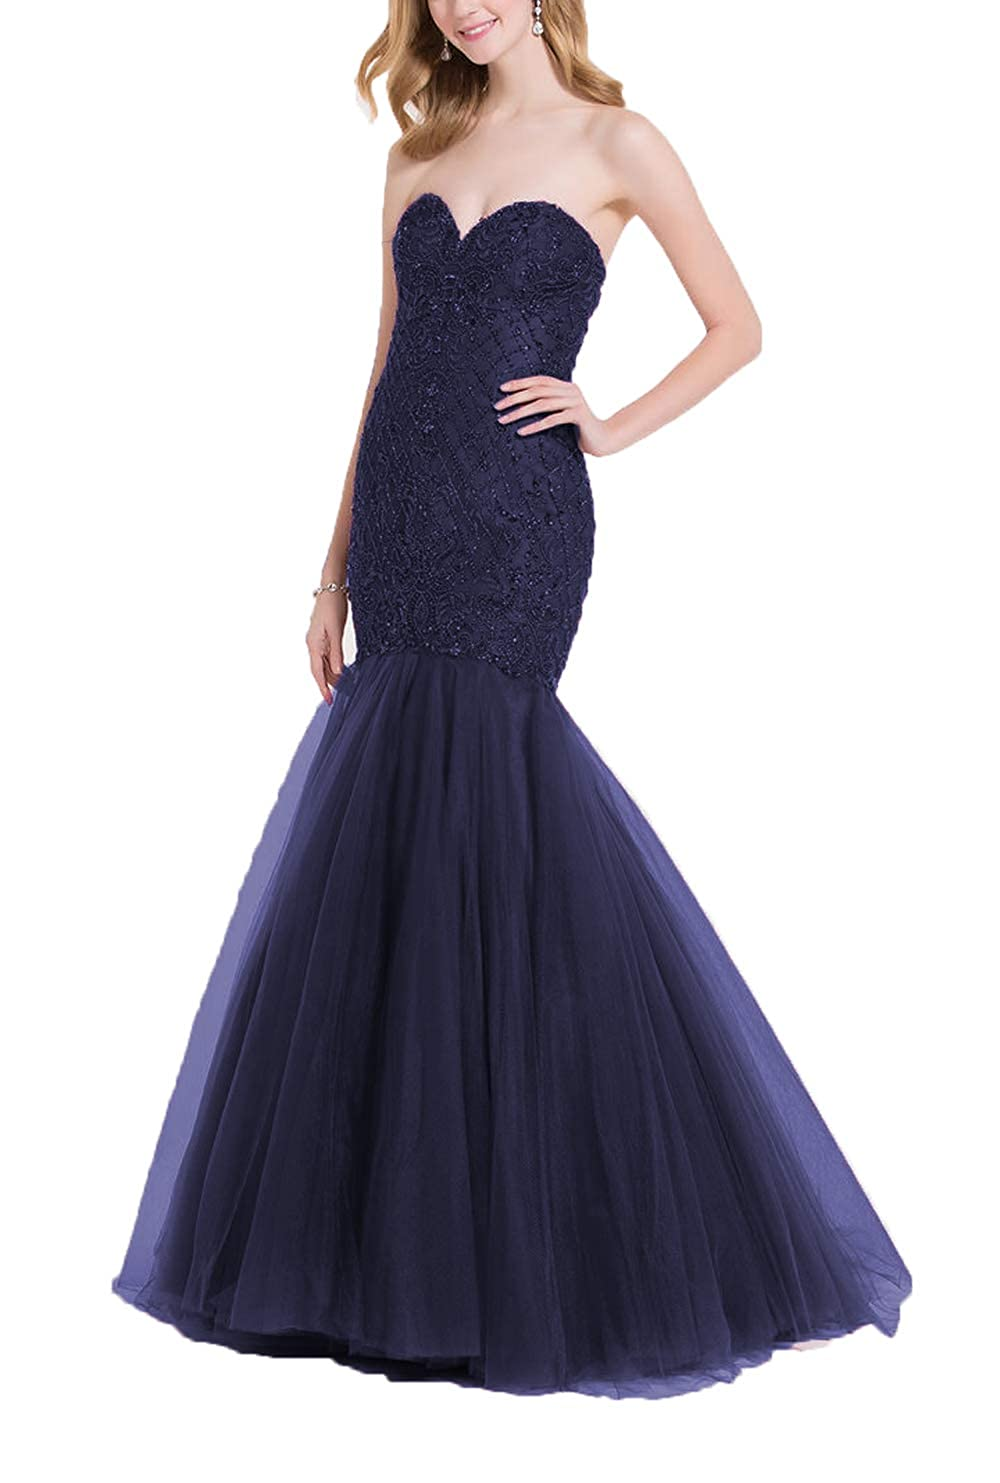 Nave bluee Yisha Bello Women's Sweetheart Strapless Beaded Mermaid Pro Dress Long Tulle Evening Ball Gowns